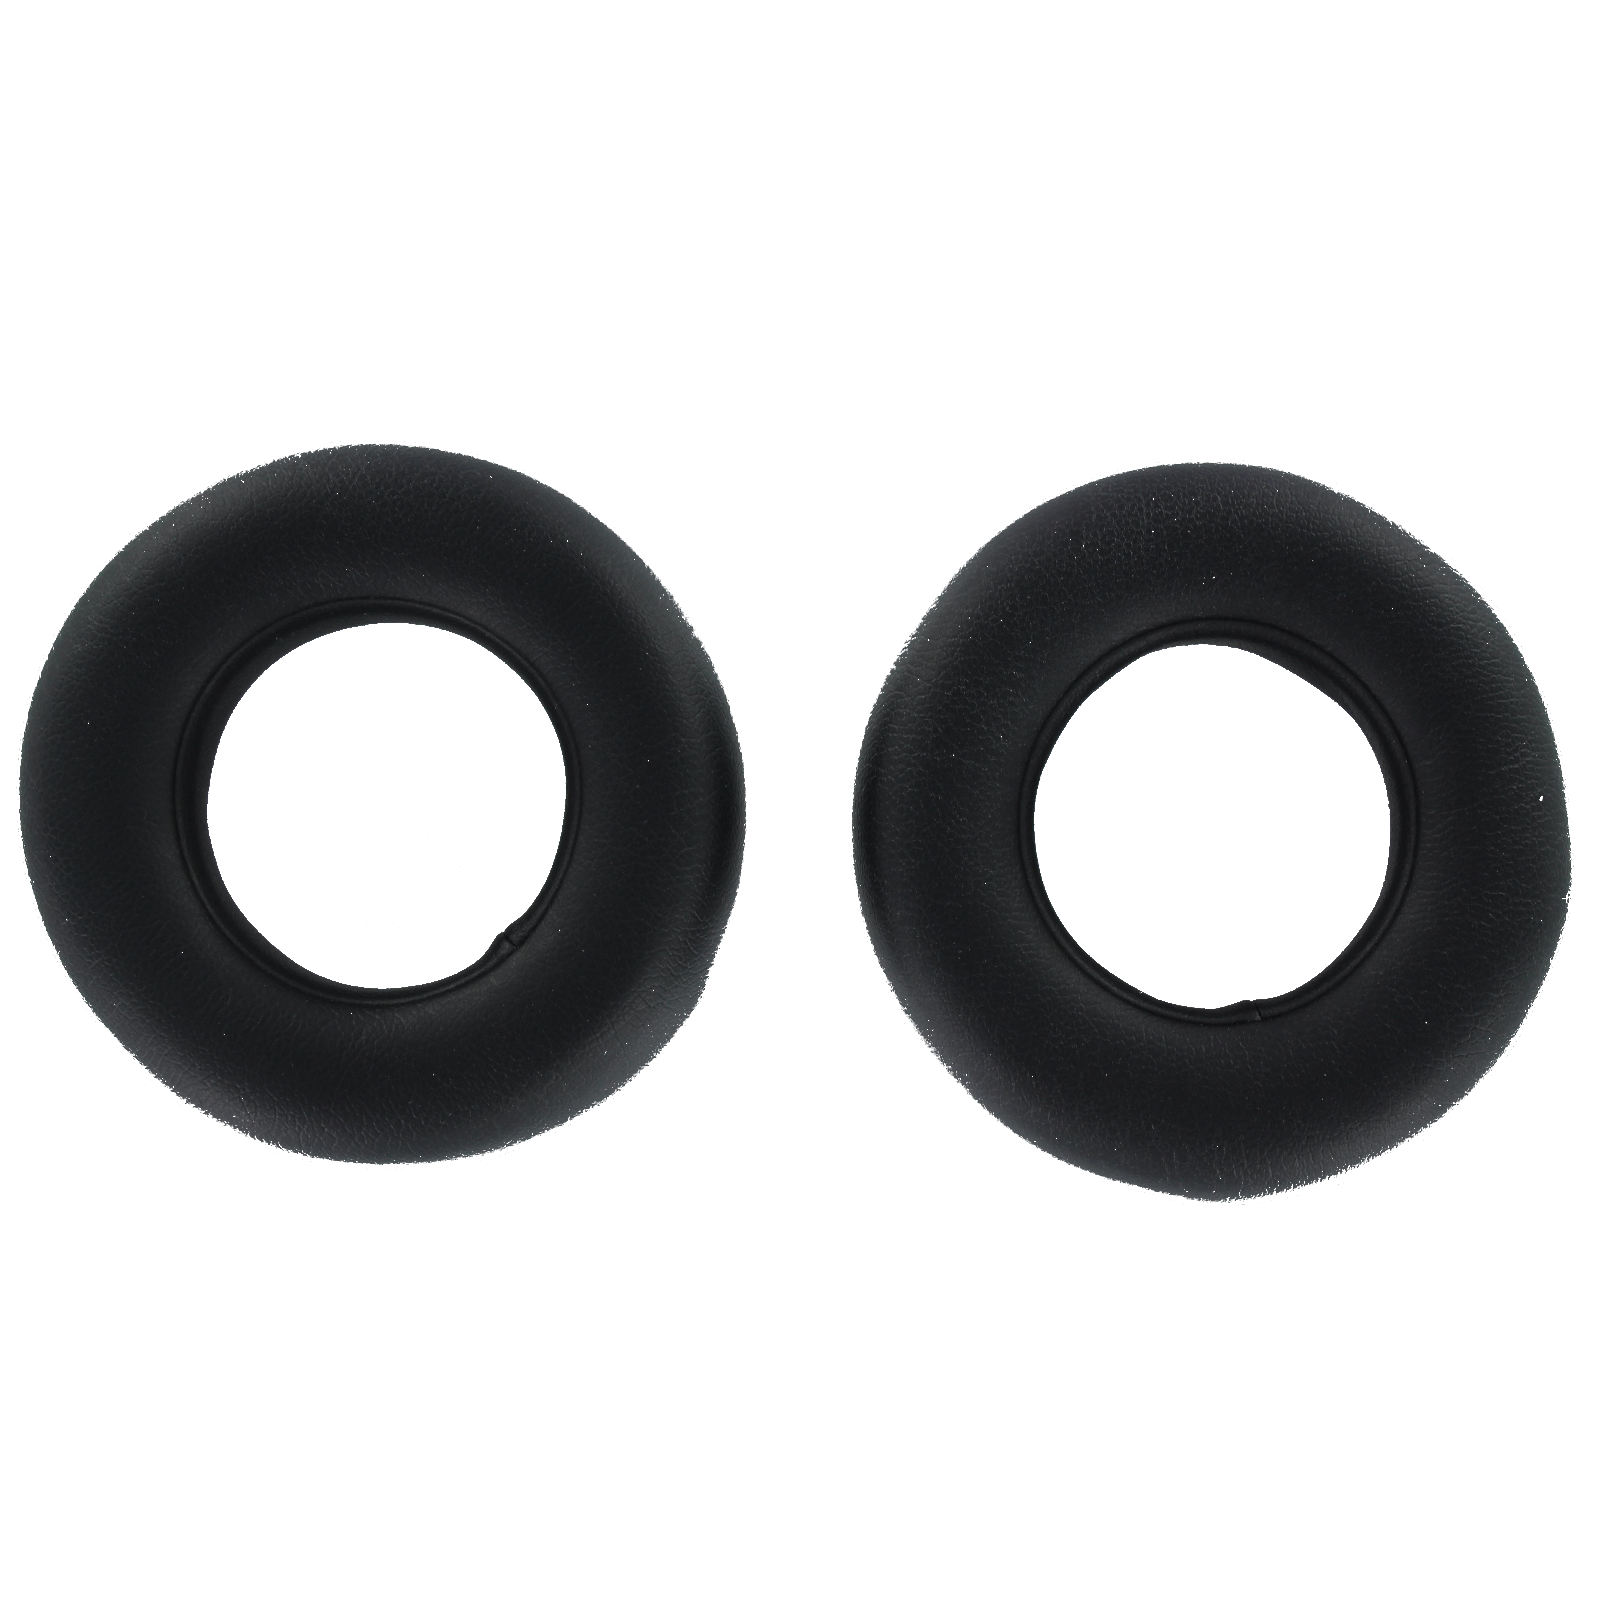 Club 700 BTNC (Ear pads) - Black - Hero